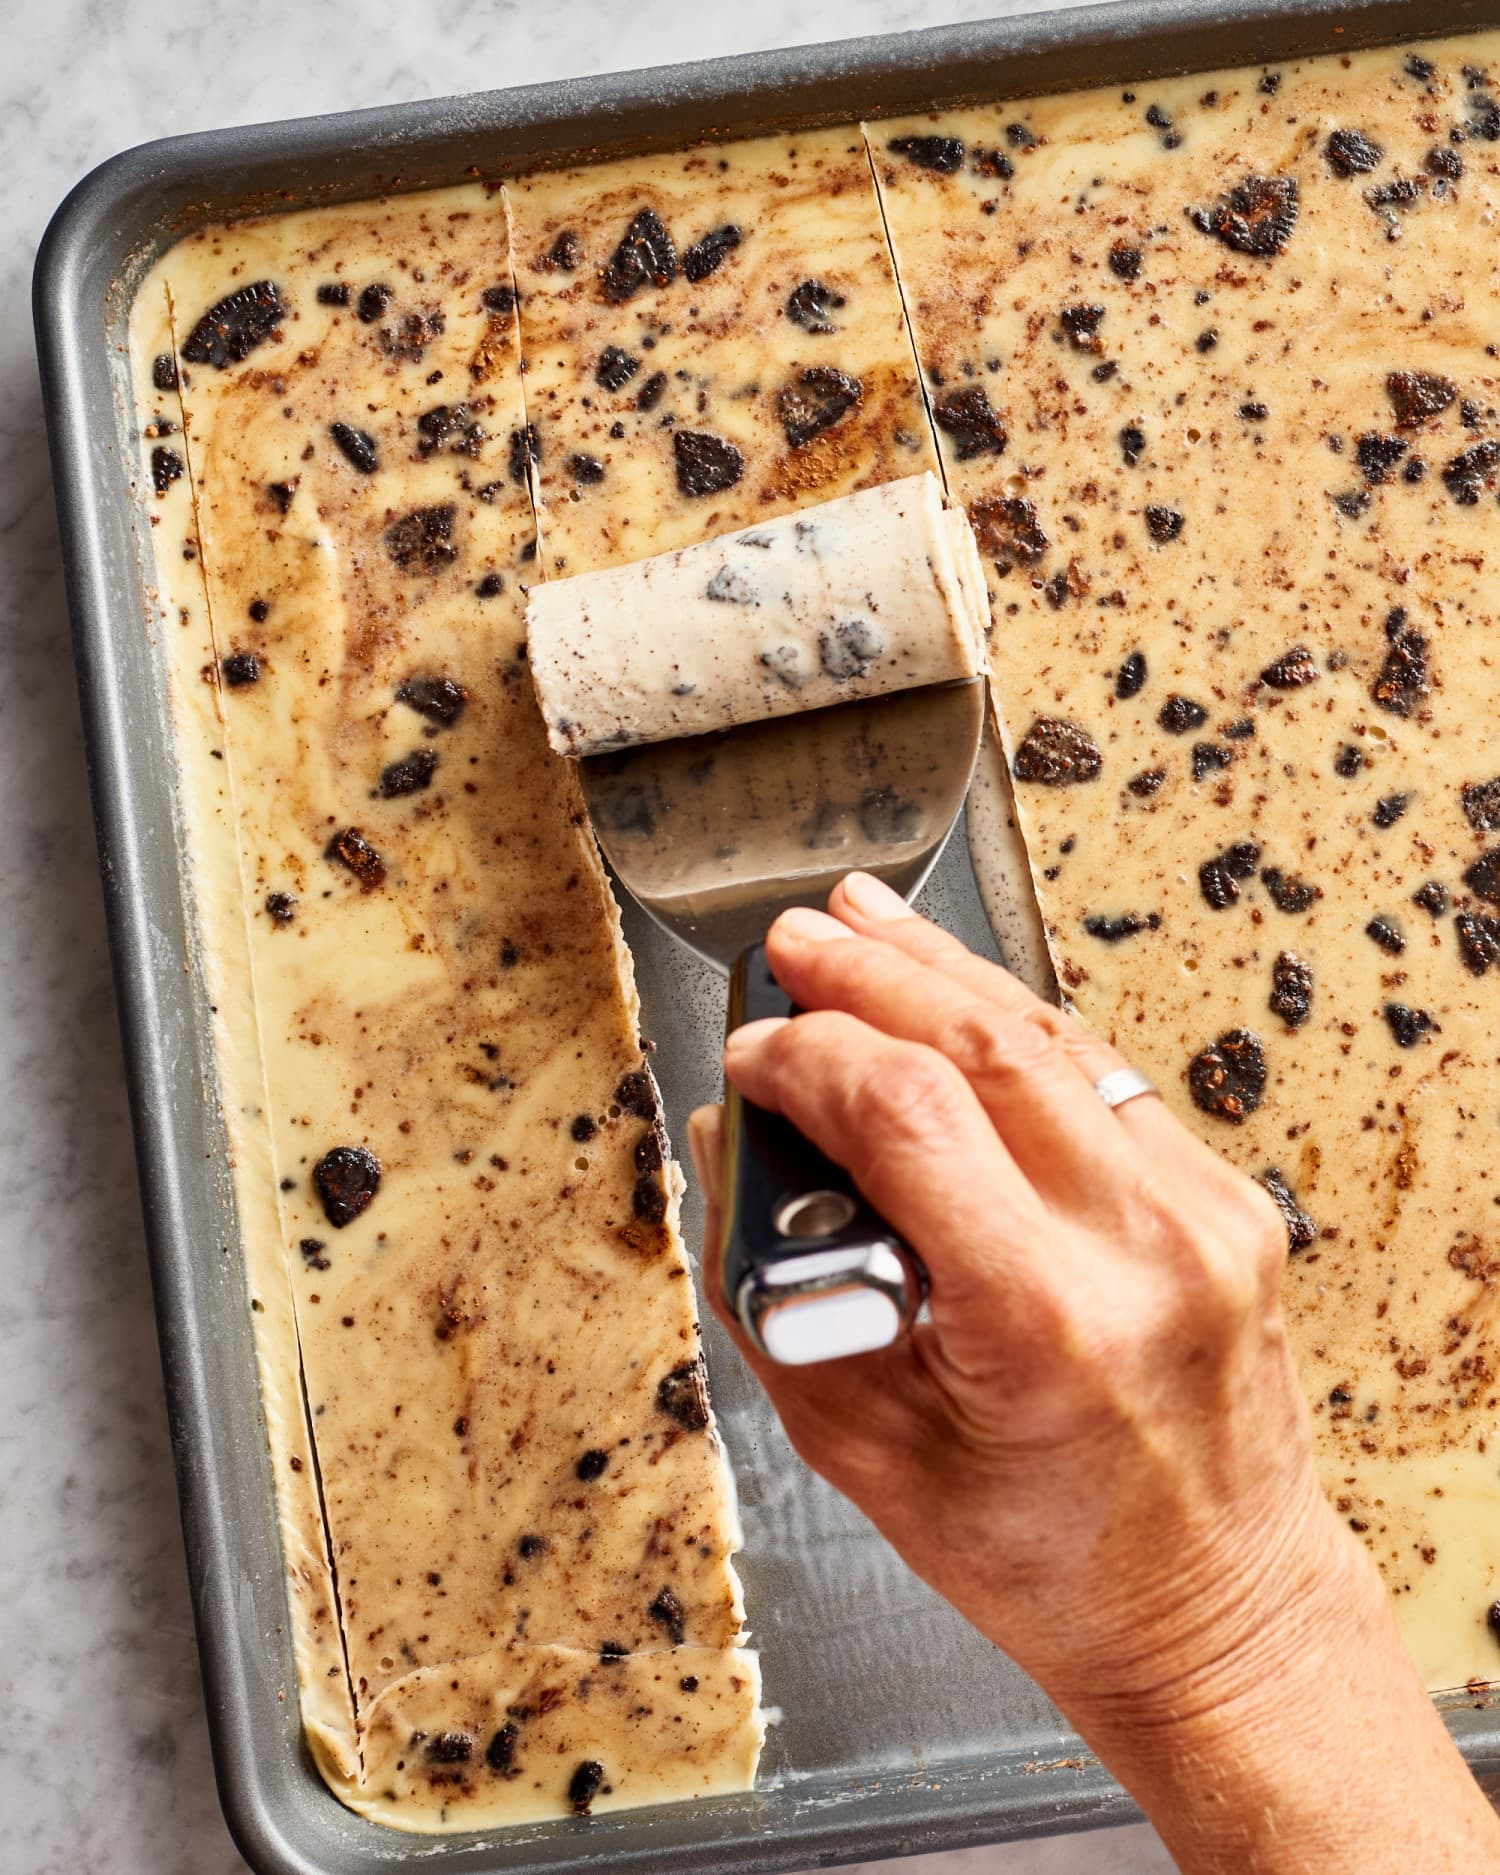 How To Make Rolled Ice Cream at Home (No Fancy Equipment Required)